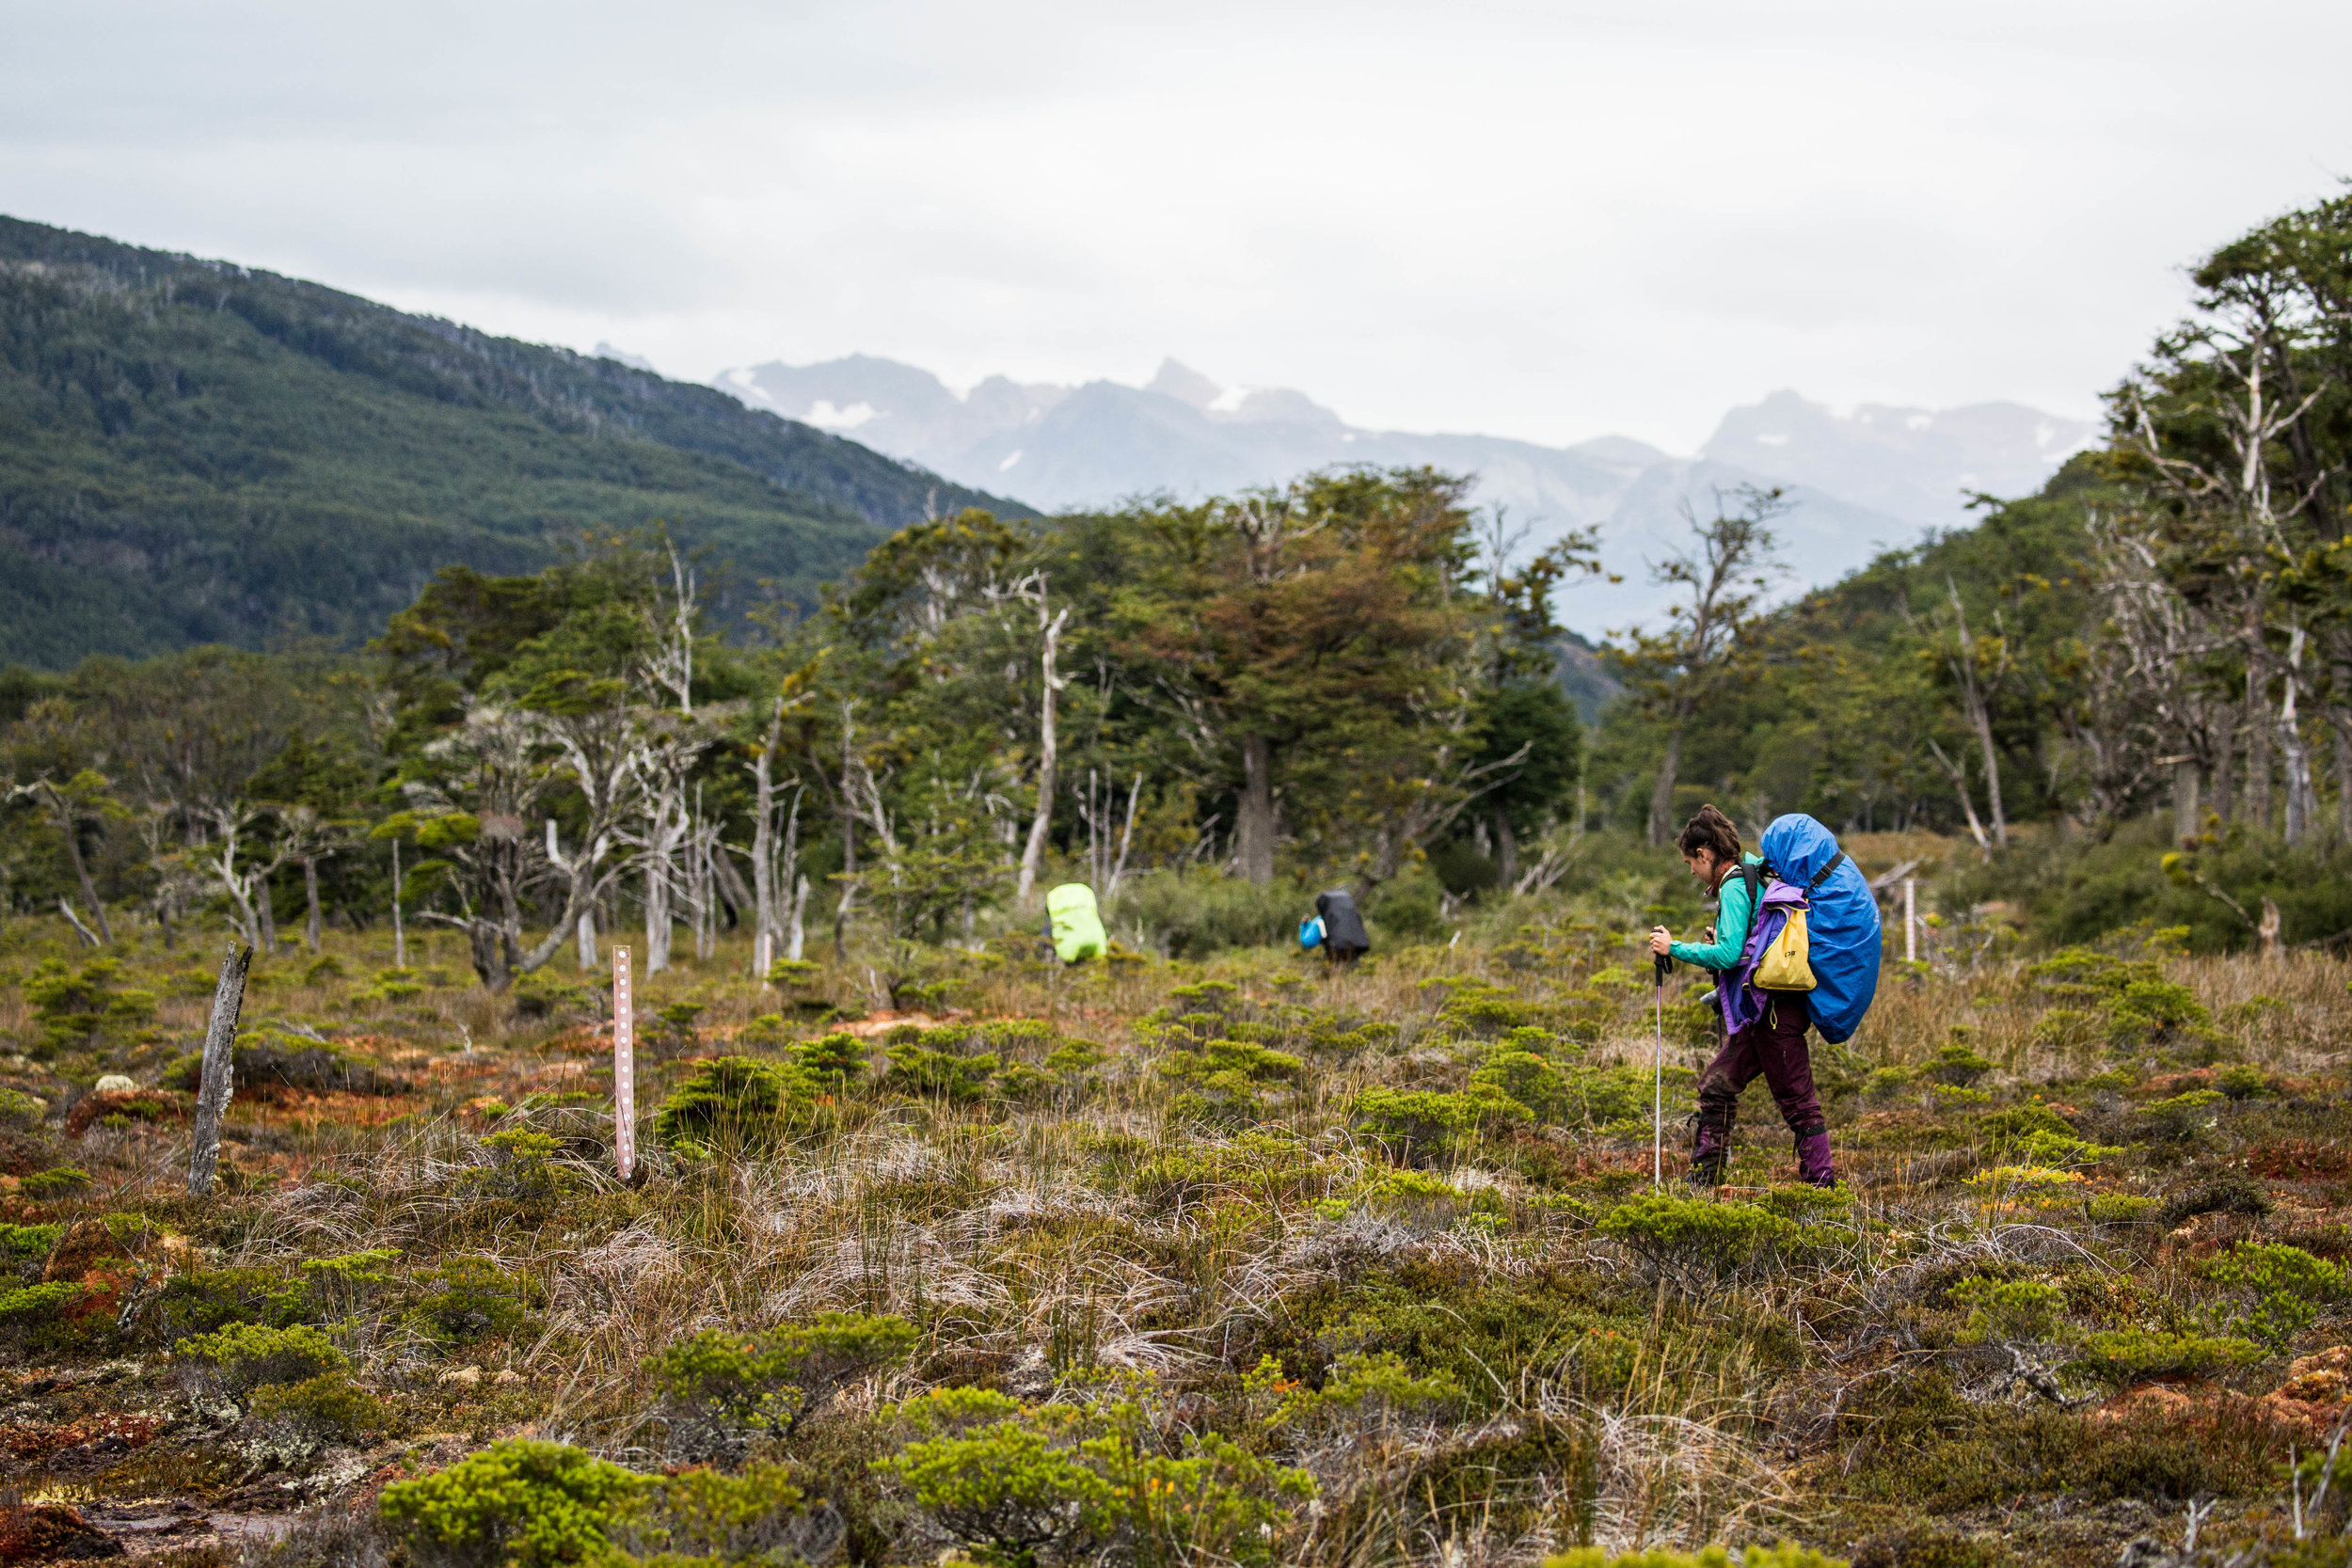 Following the trail through an impressive peat bog area of the park.